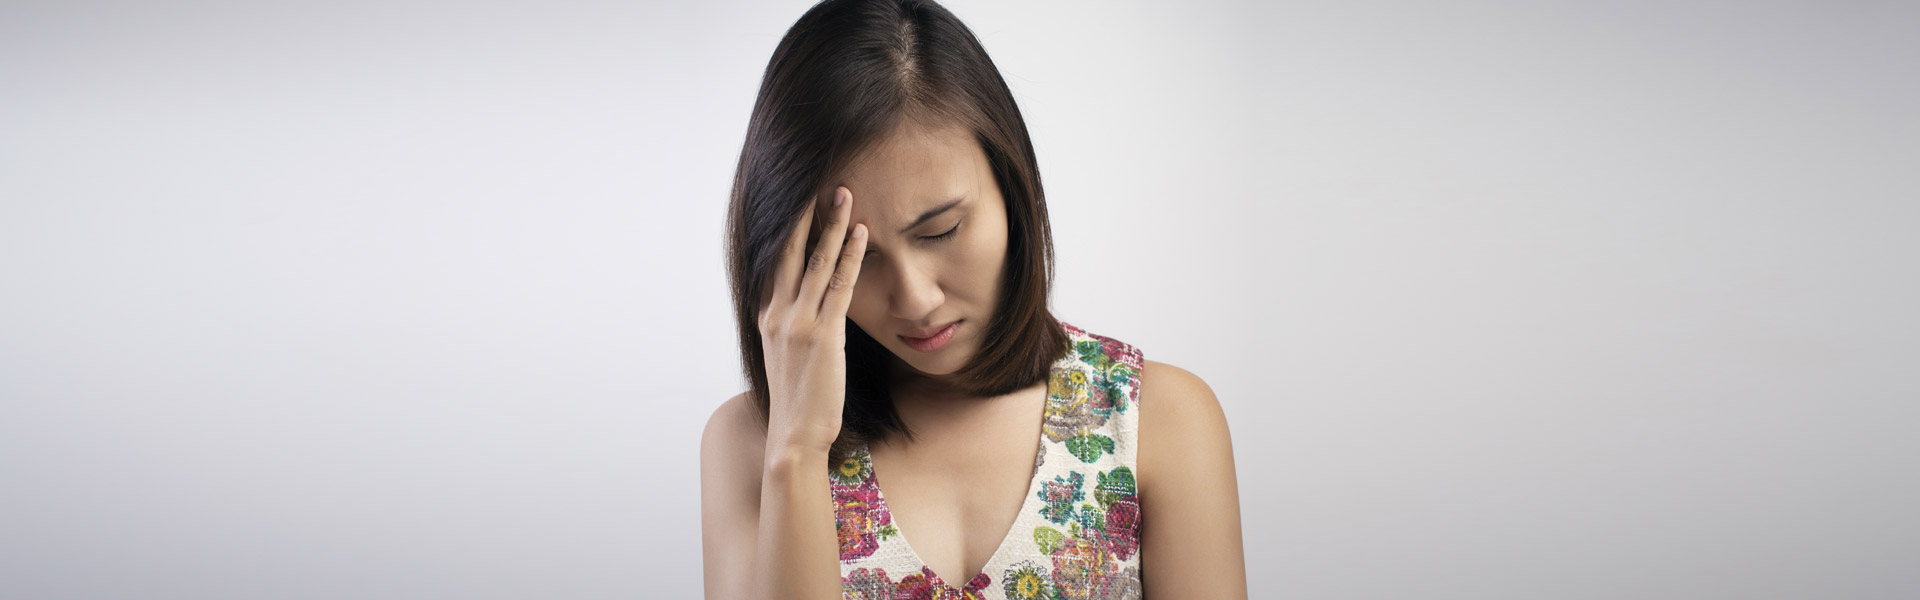 7 Things Not to Say to Migraine Sufferers